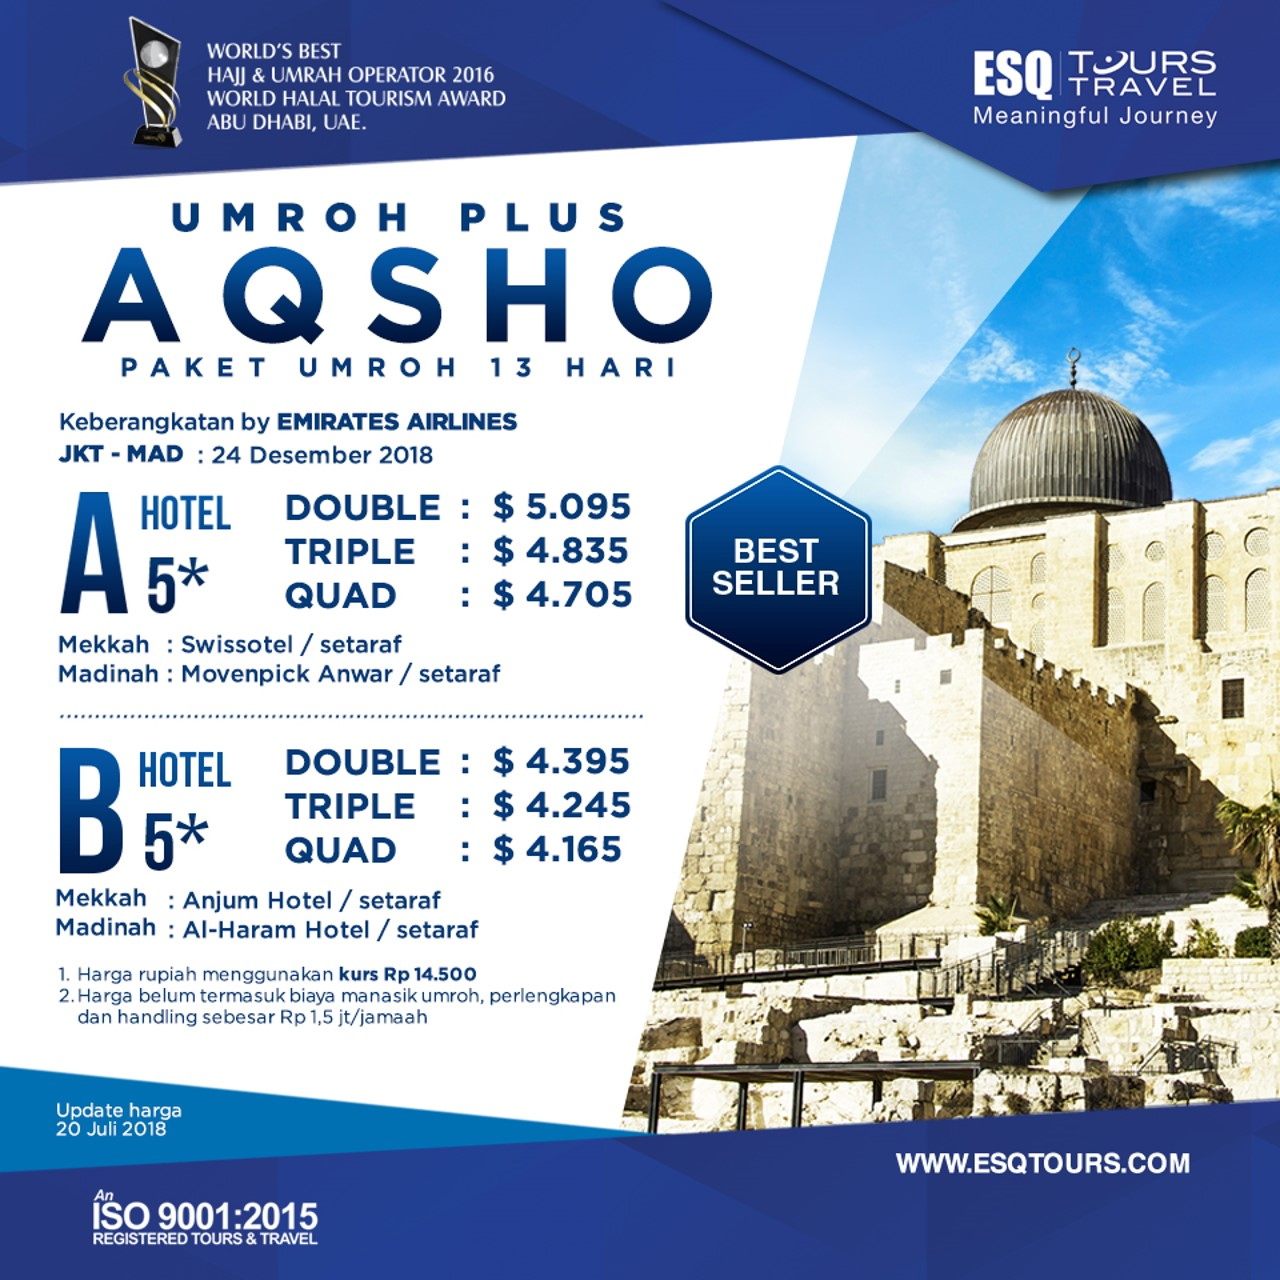 ESQ Tours Travel | Harga paket umroh plus aqsho desember 2018